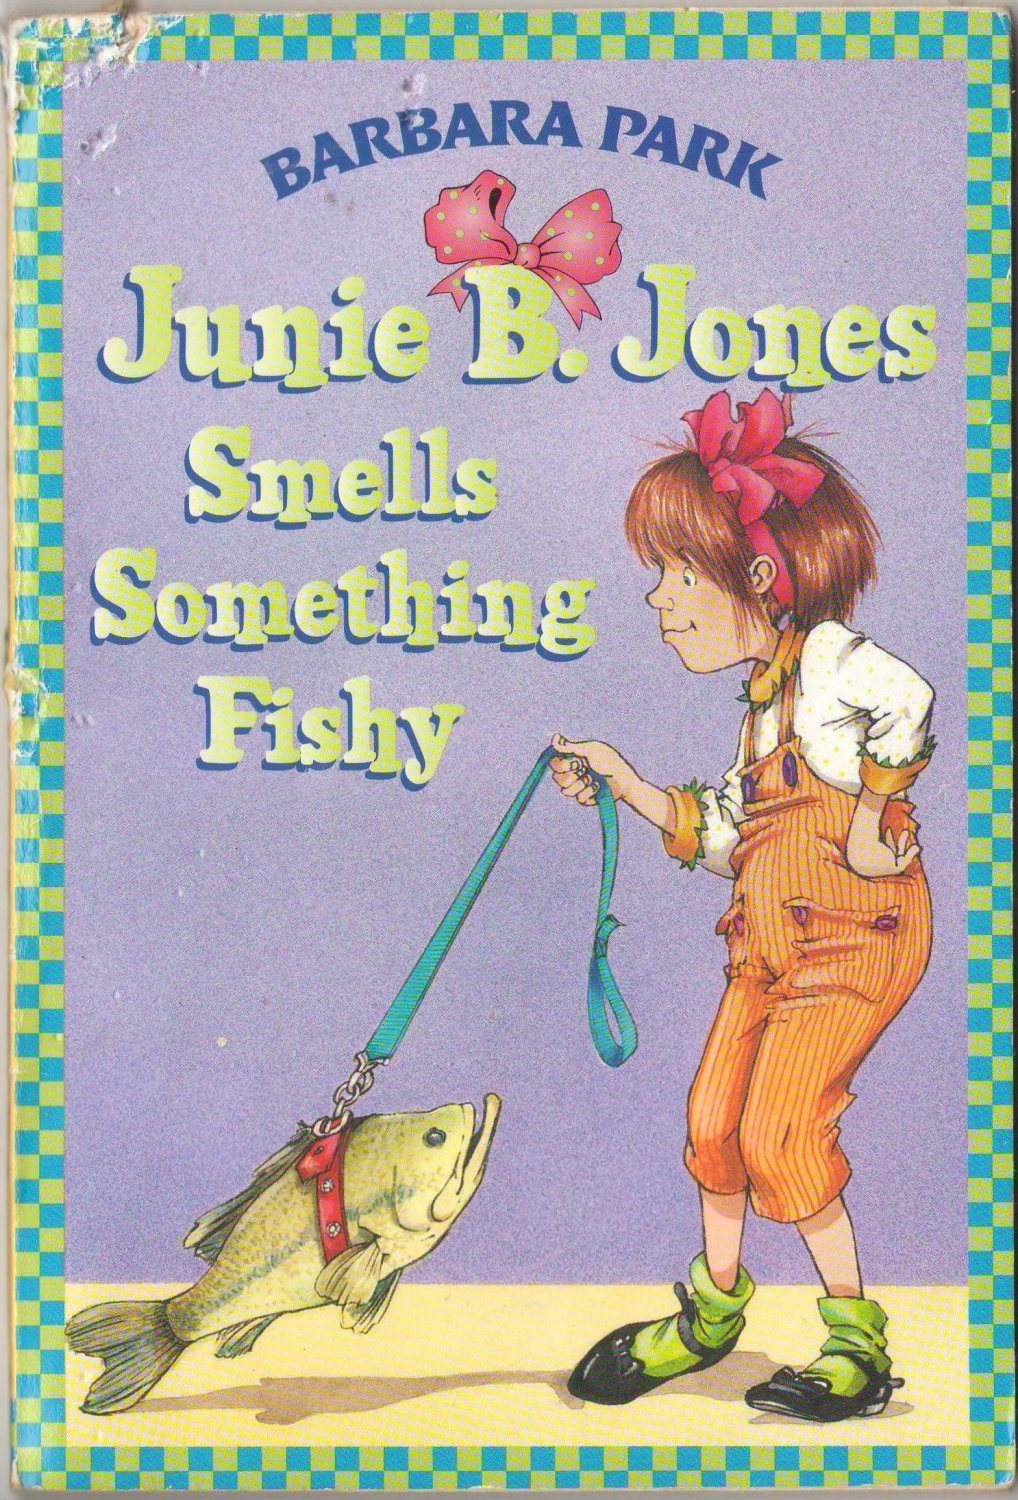 junie b jones smells something fishy book report Bibliography of barbara park  junie b jones smells something fishy  in this junie b book, junie b teaches you how to survive school and what she would do if.